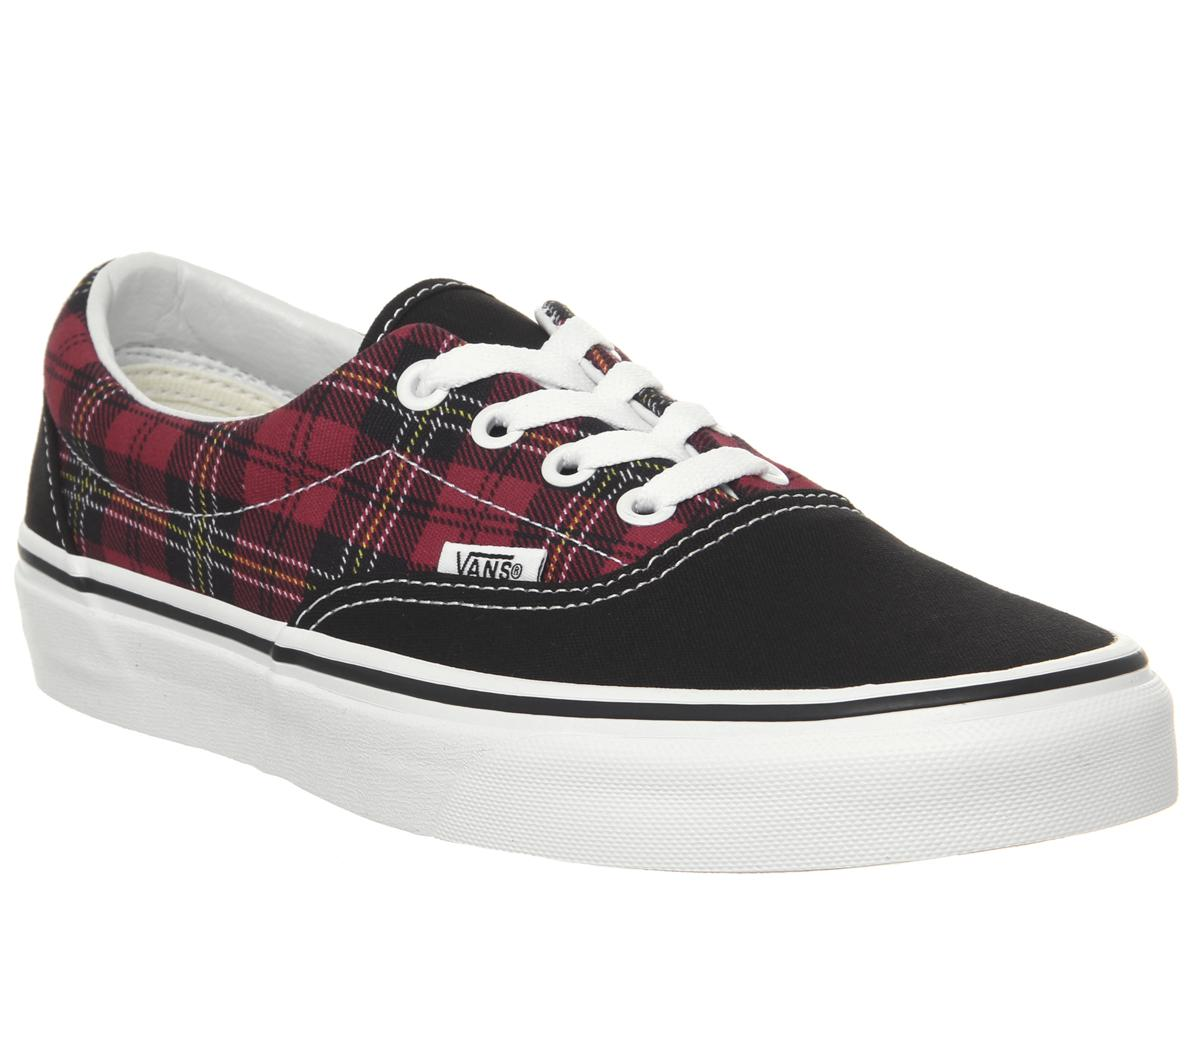 vans off the wall new shoes > OFF53% Discounts